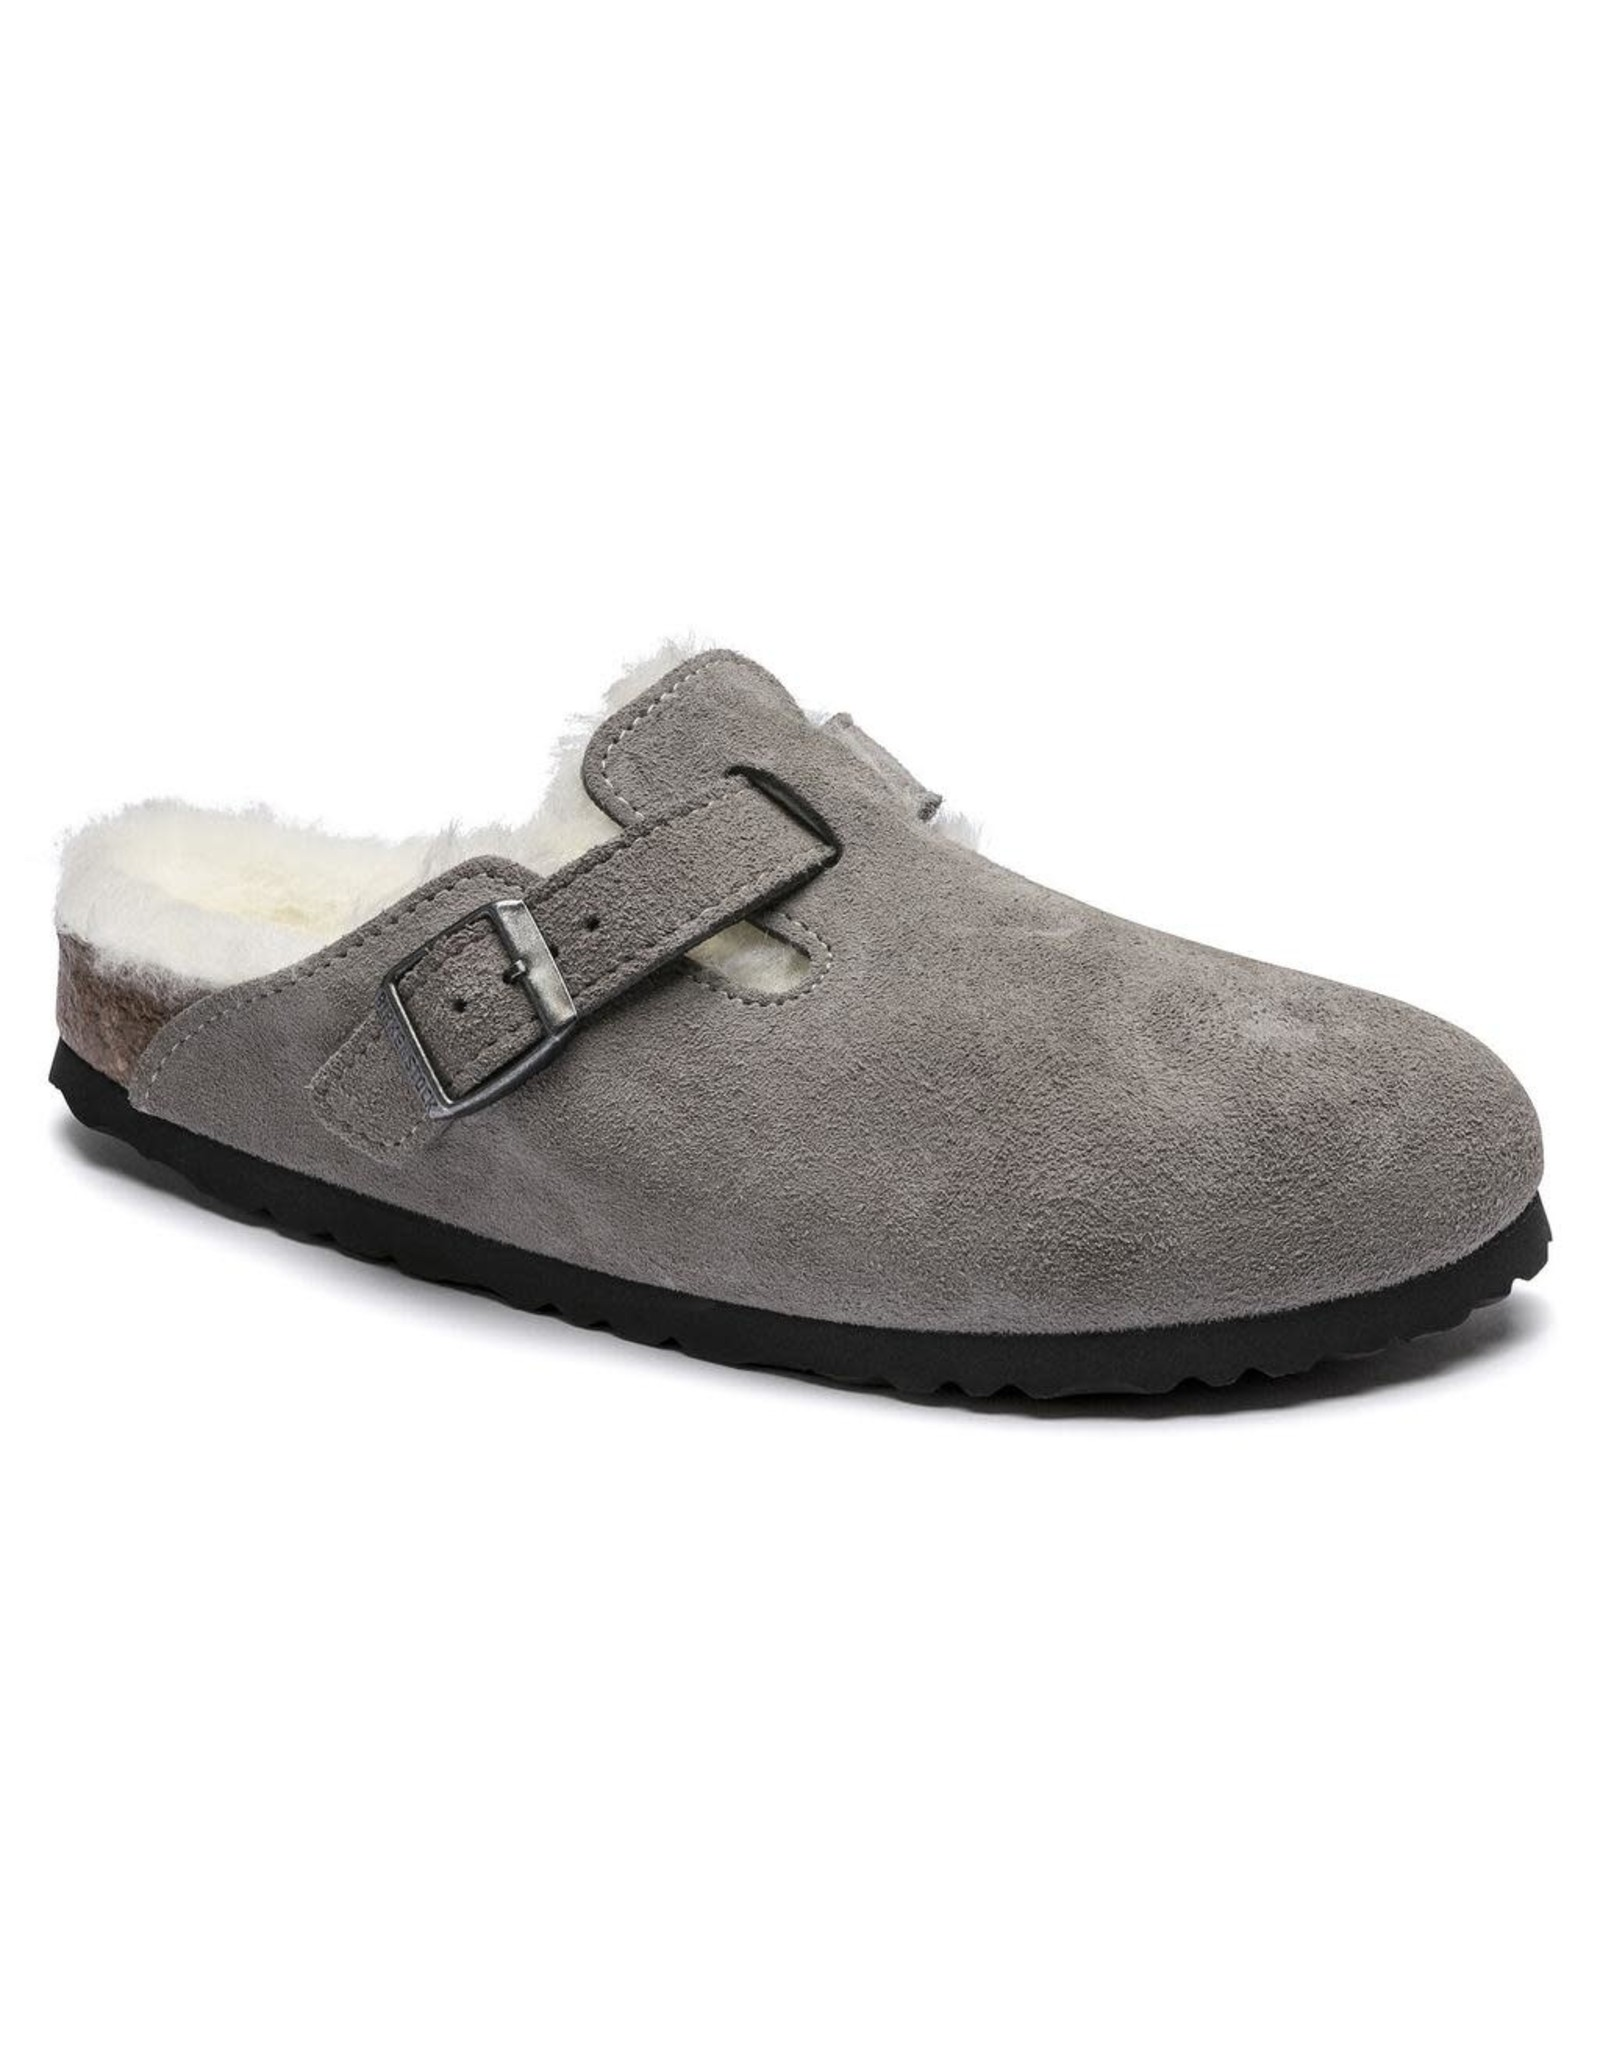 Birkenstock Boston Suede Clog with Shearling Fur Lining